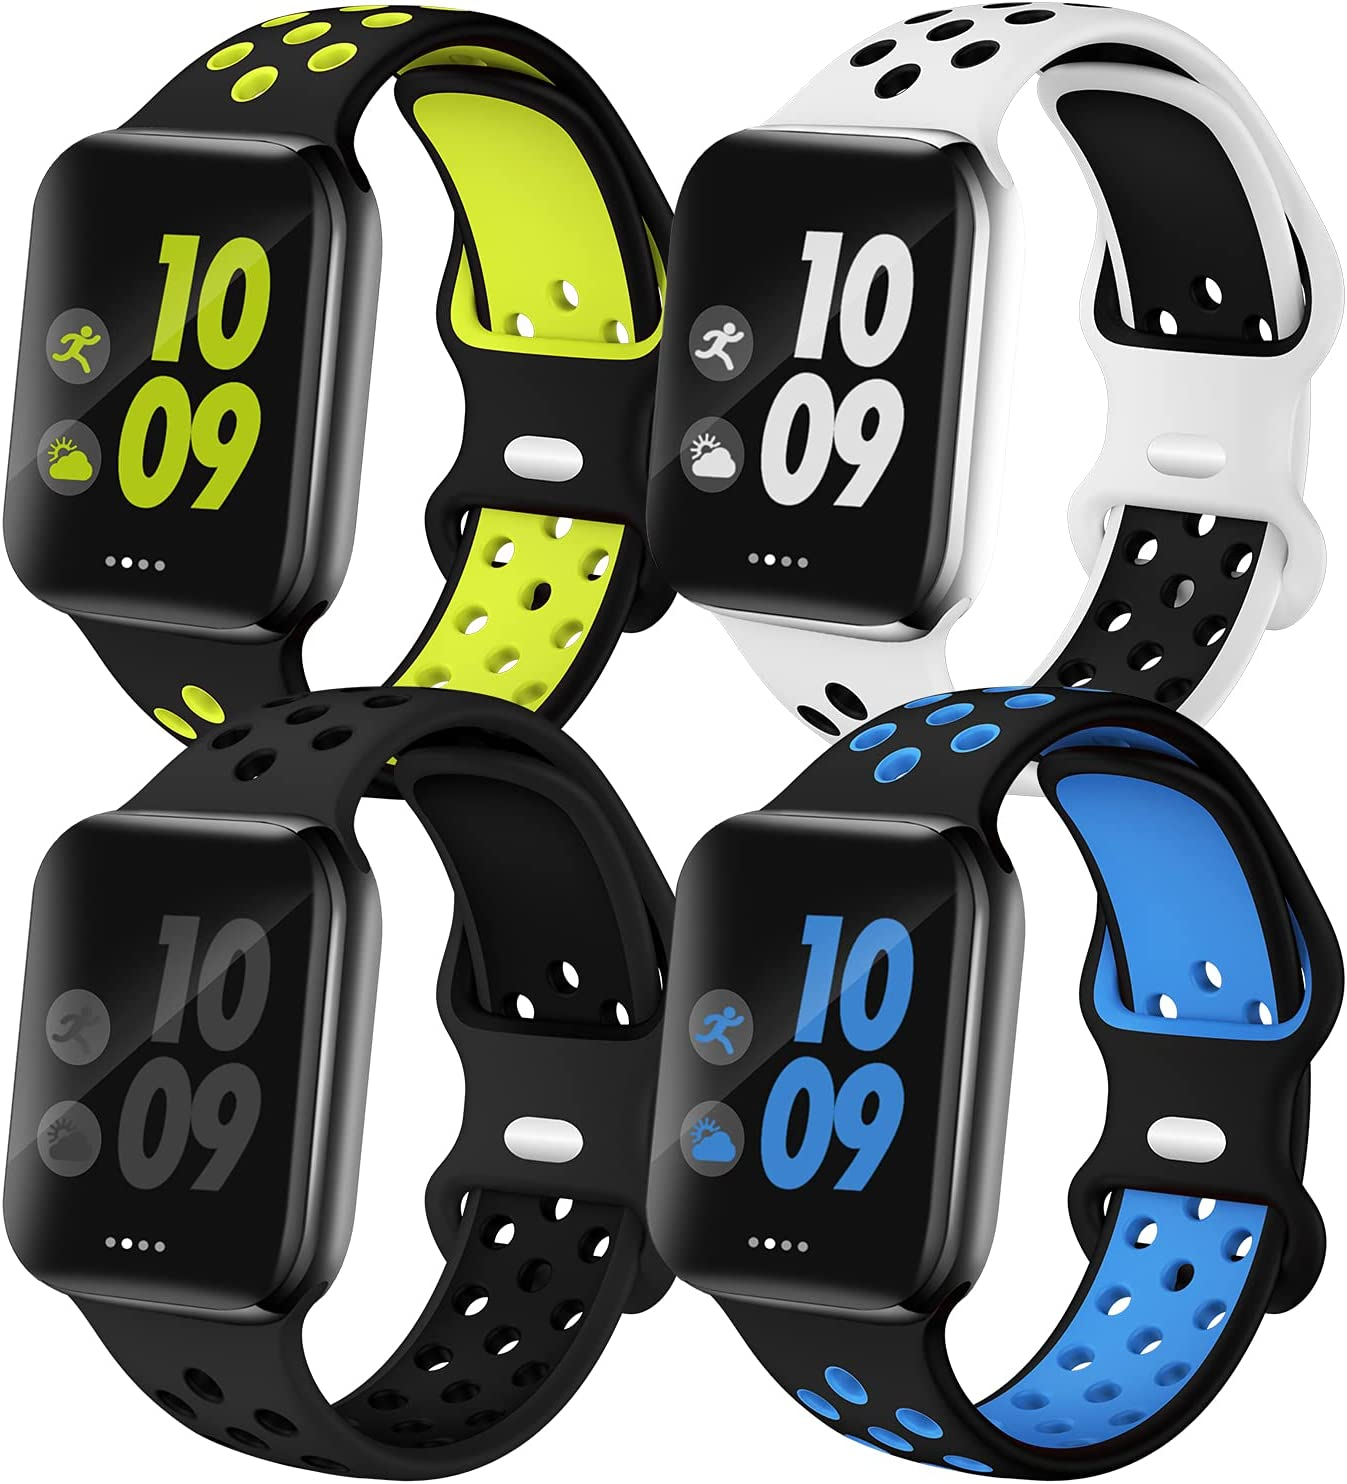 EXCHAR Sport Band Compatible with Apple Watch Band 42mm 44mm 45mm Series 7/6/5/4 Breathable Soft Silicone Replacement Wristband Women and Men for iWatch 42mm Series 3/2/1 Nike+ All Various Styles M/L 4 Pack